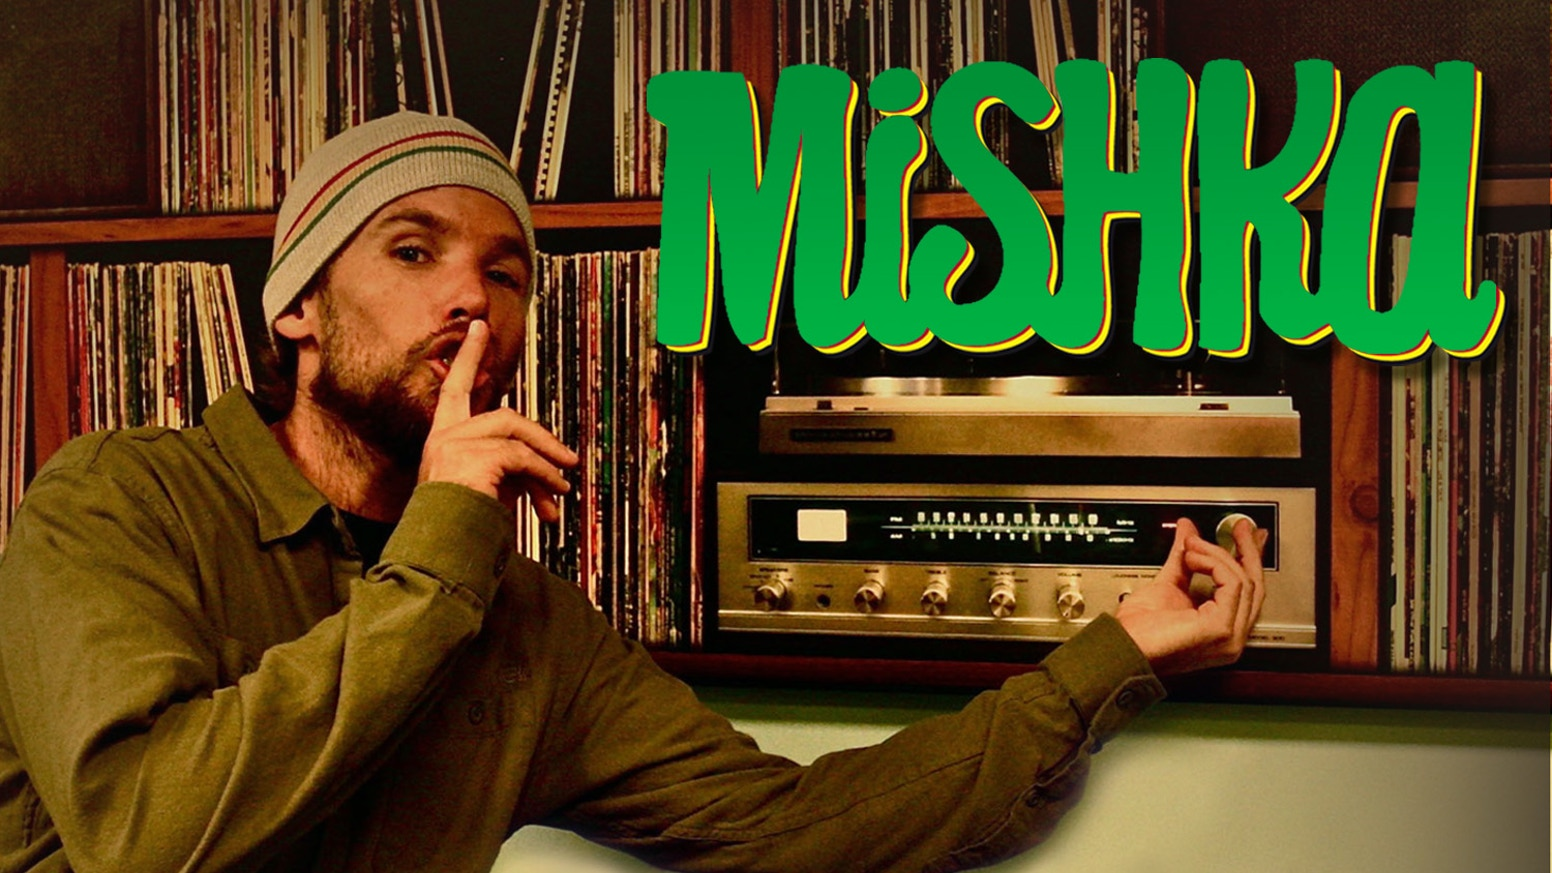 Mishka is Making a New Album by Mishka » Exclusive EP, Free